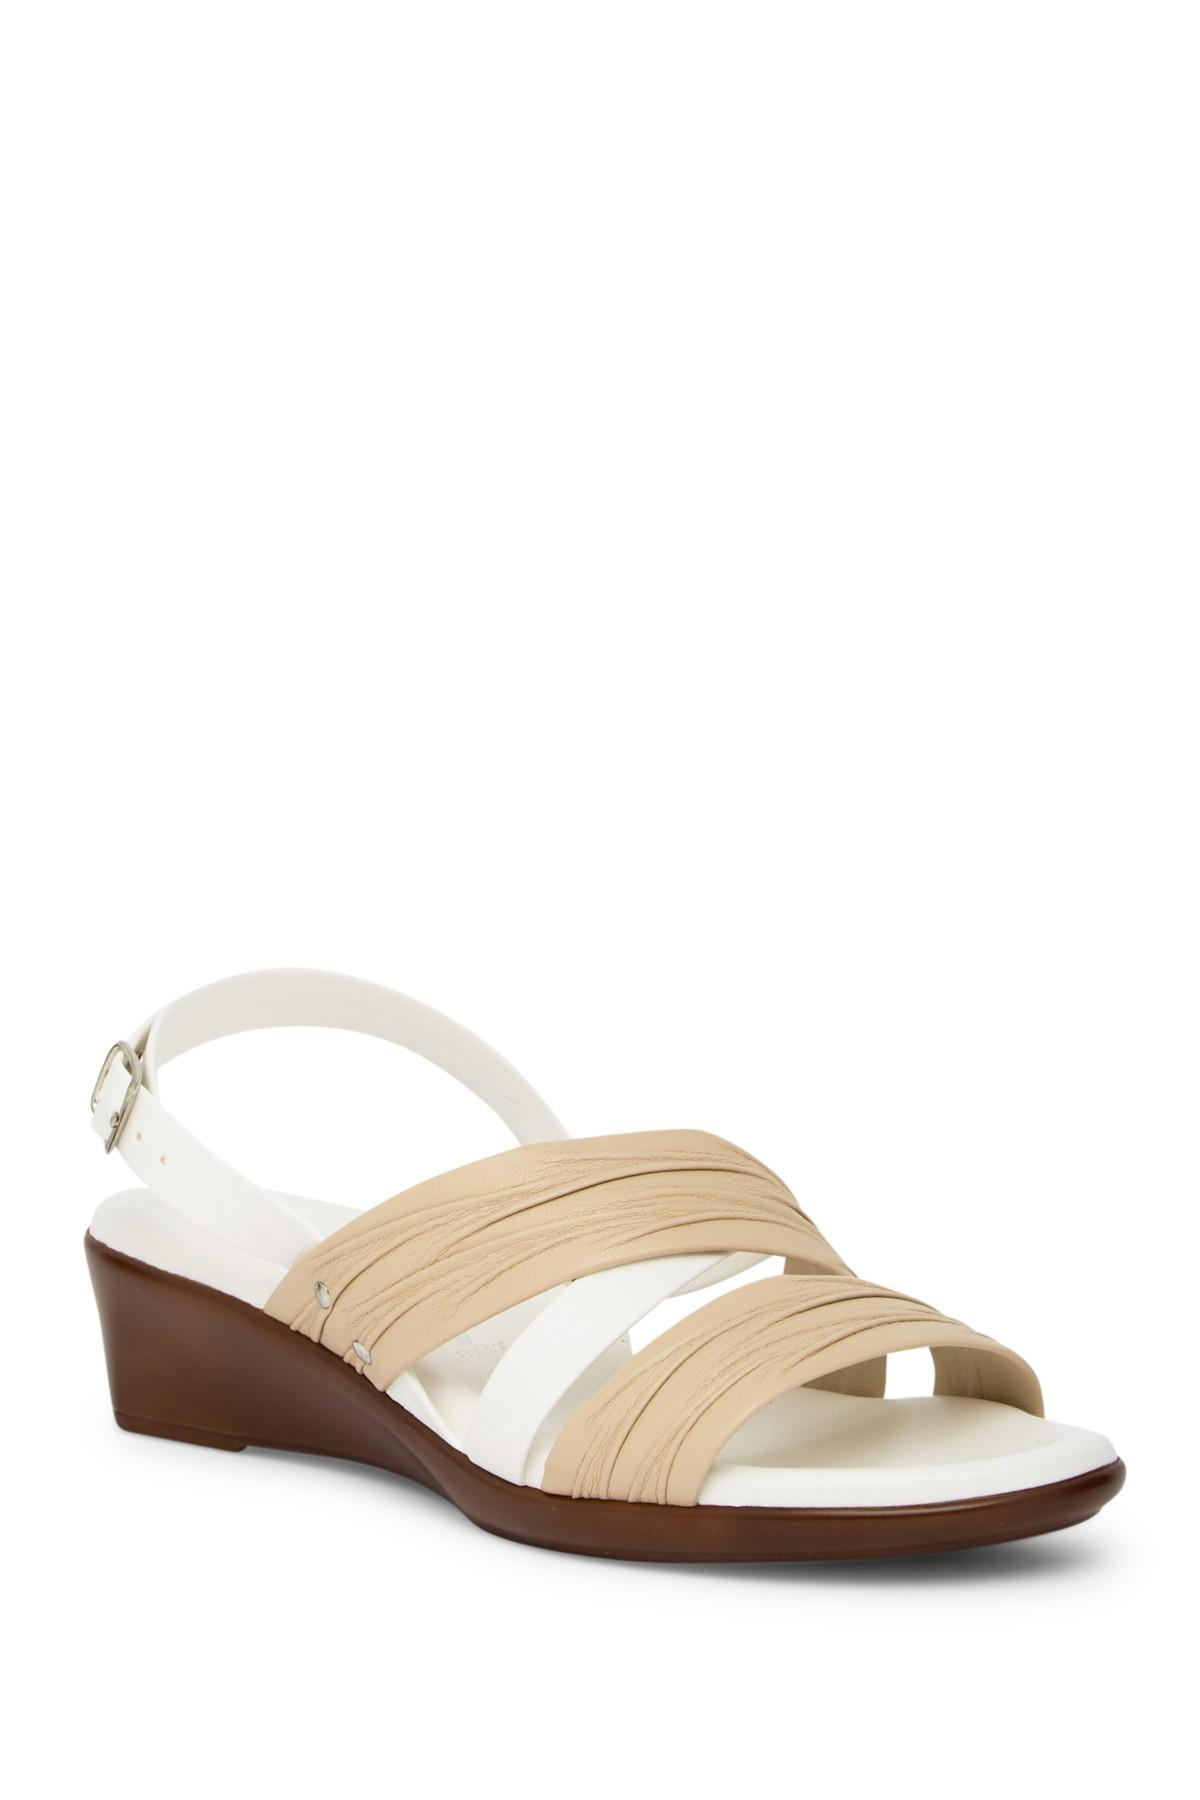 Italian Shoemakers Maxi Wedge Sandal - Wide Width Available f3pucFD